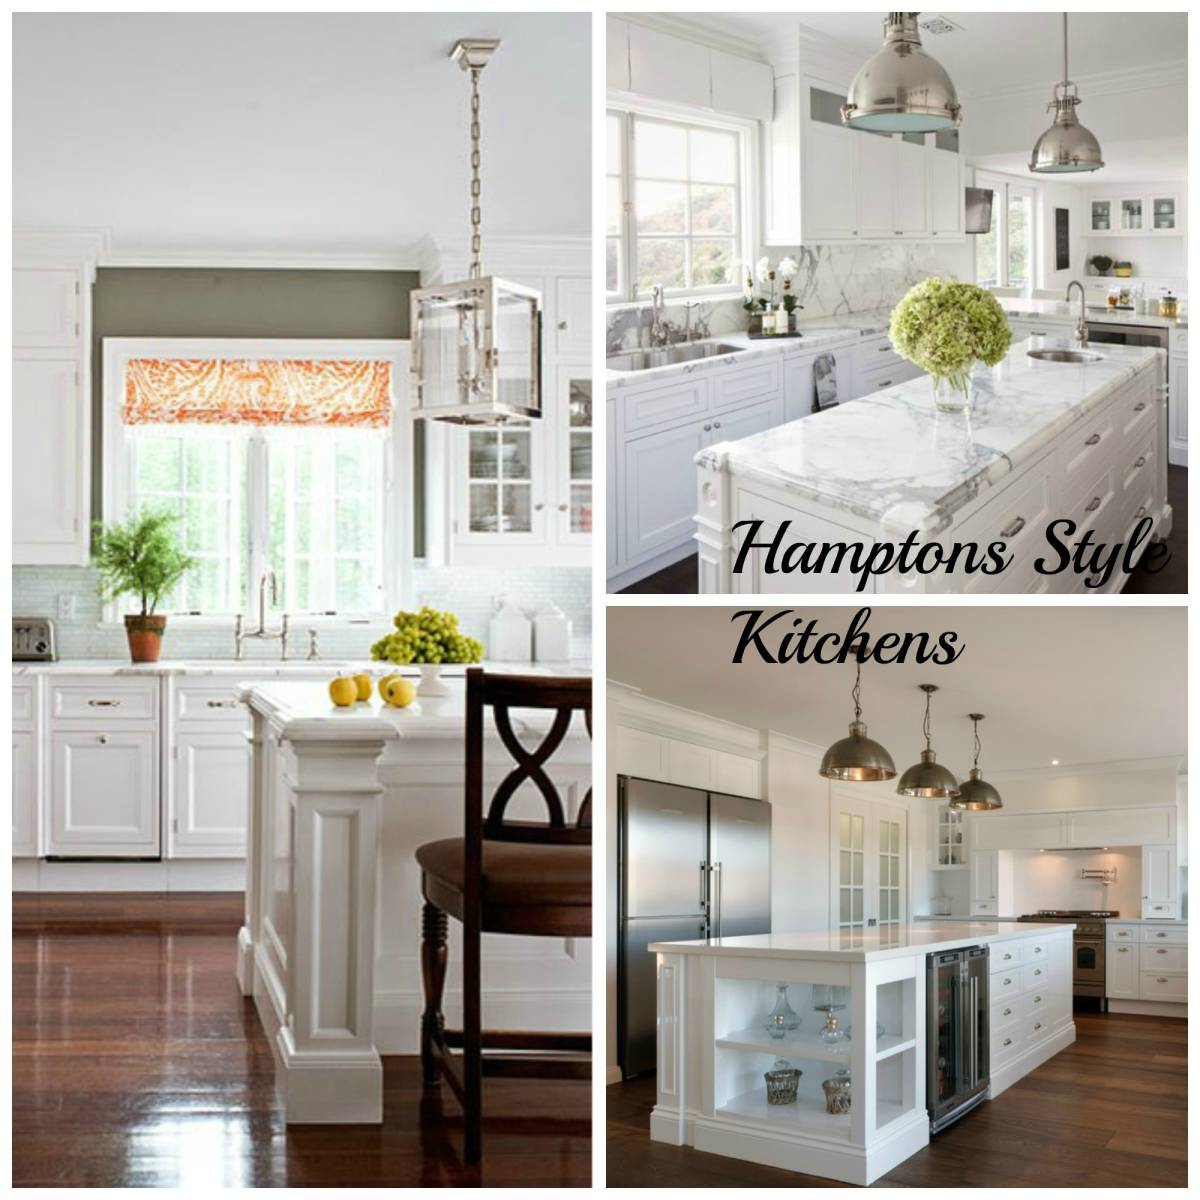 5 Hamptons Style Kitchen Designs-Inspired Space